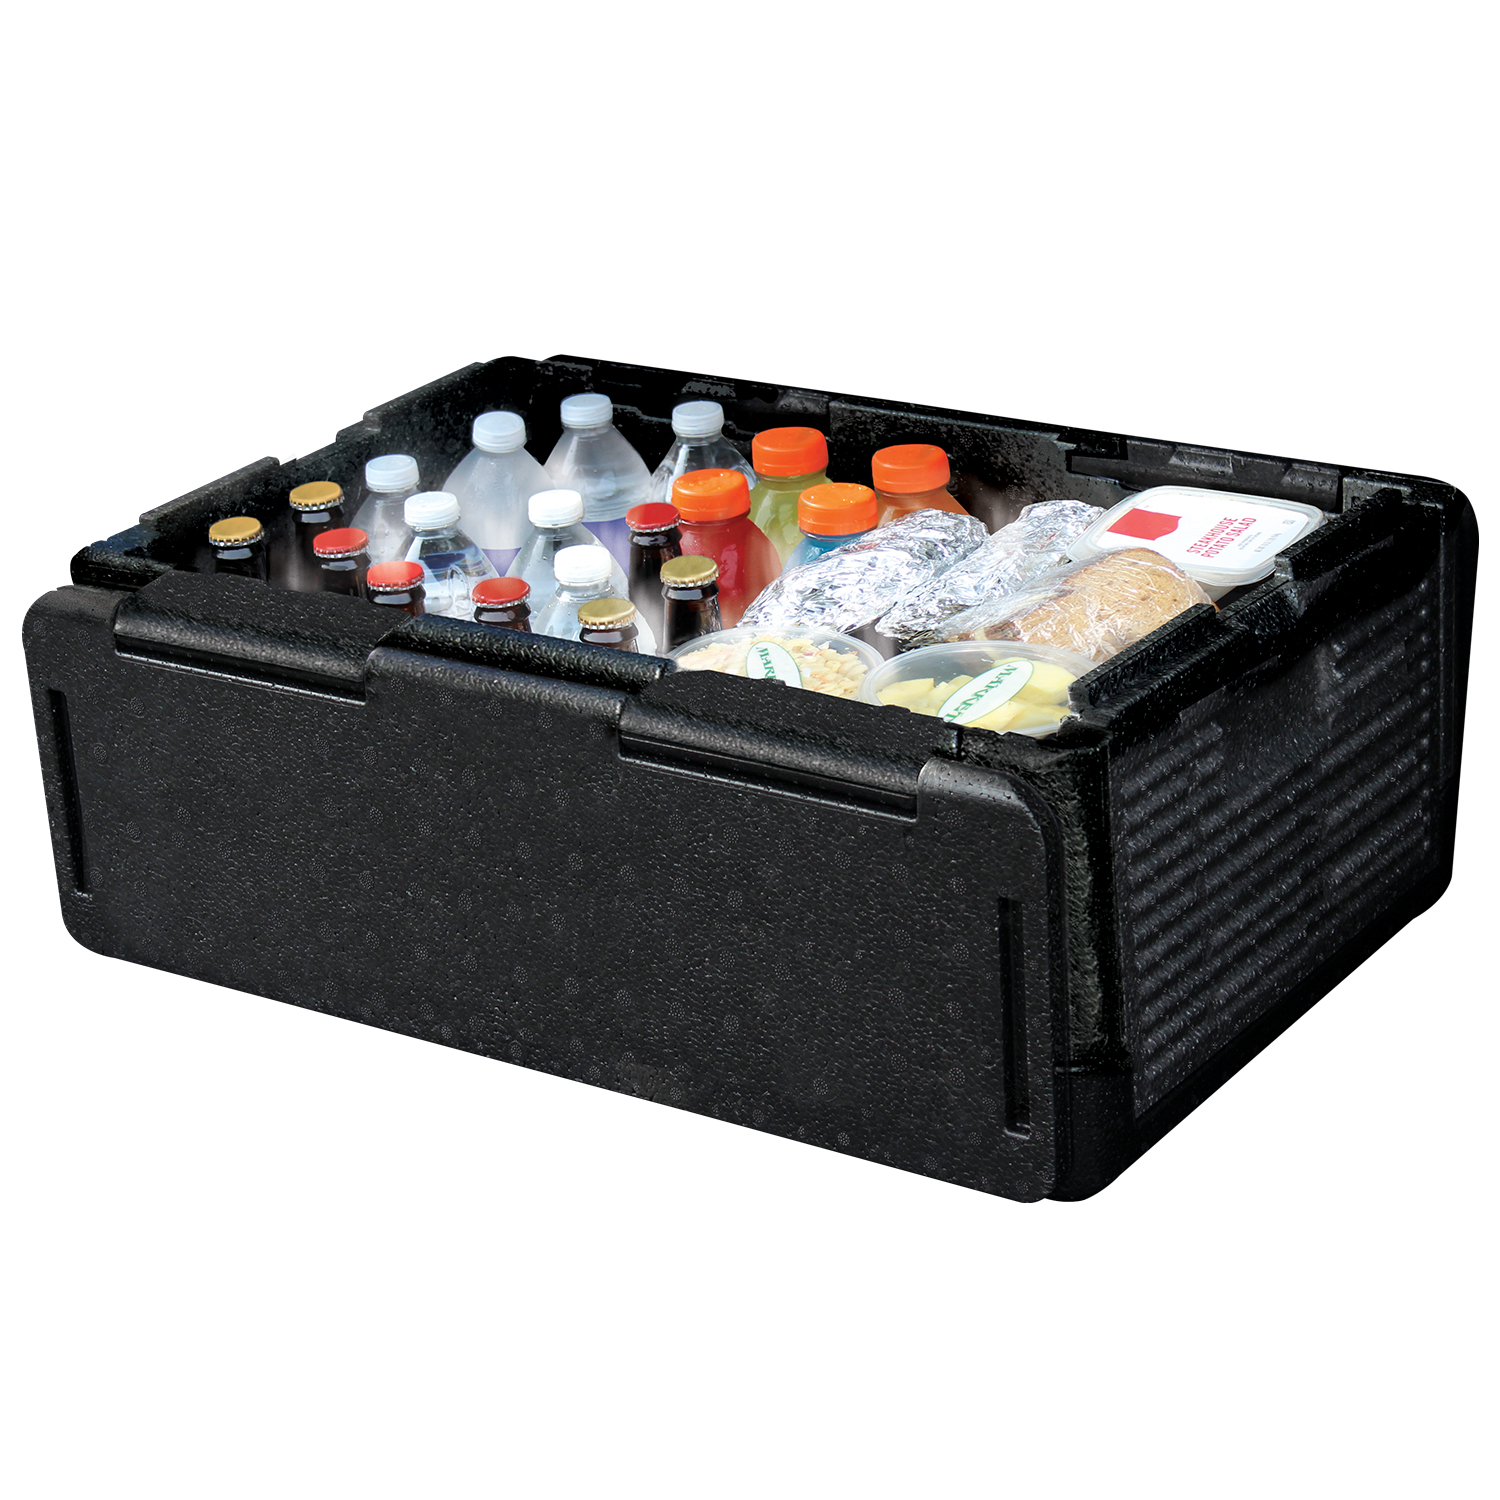 As Seen On TV Collapsible Cooler 41 qt CHILL CHEST Lightweight and Foldable